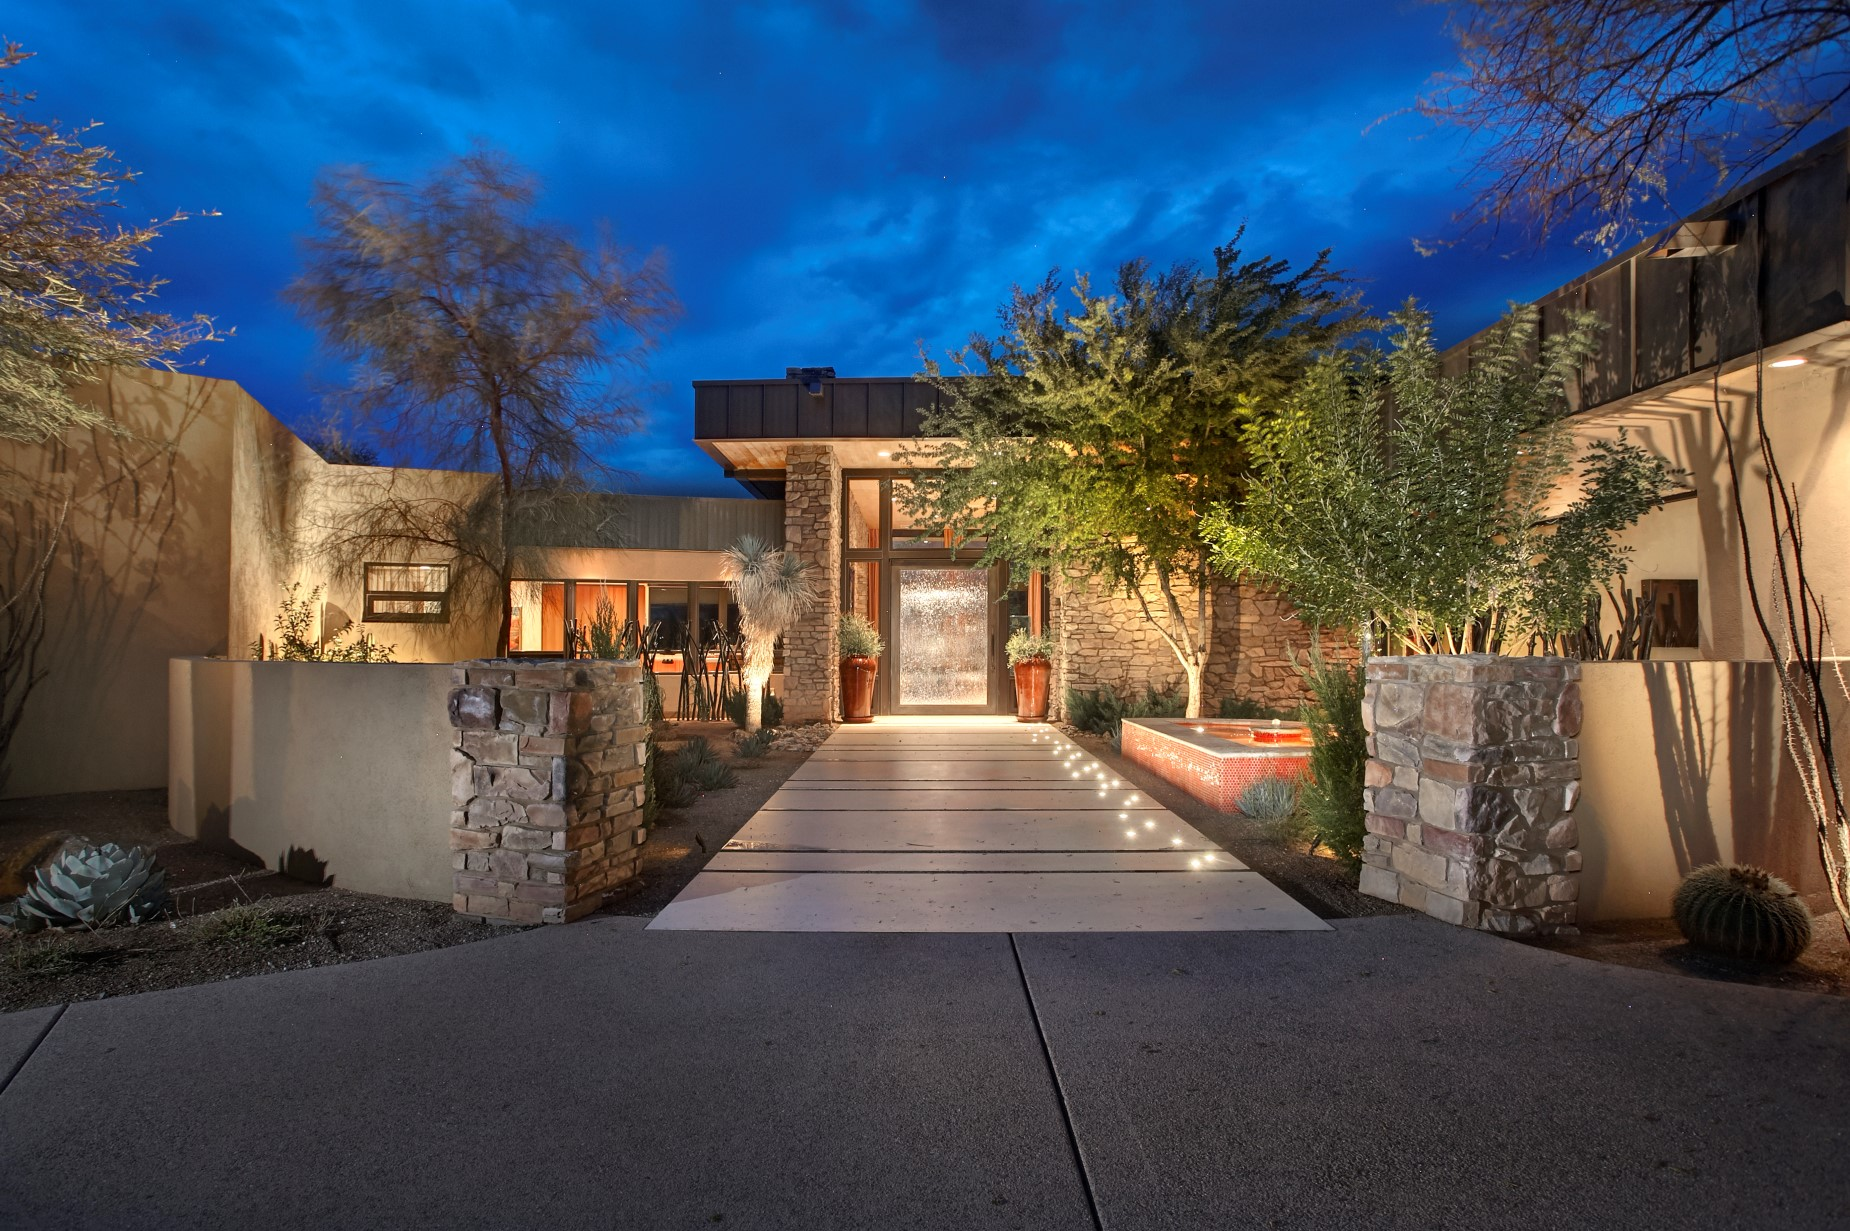 Casa unifamiliar en venta en/de 3868 N Canyon Ranch Drive, Tucson, Arizona ,85750  , EUA